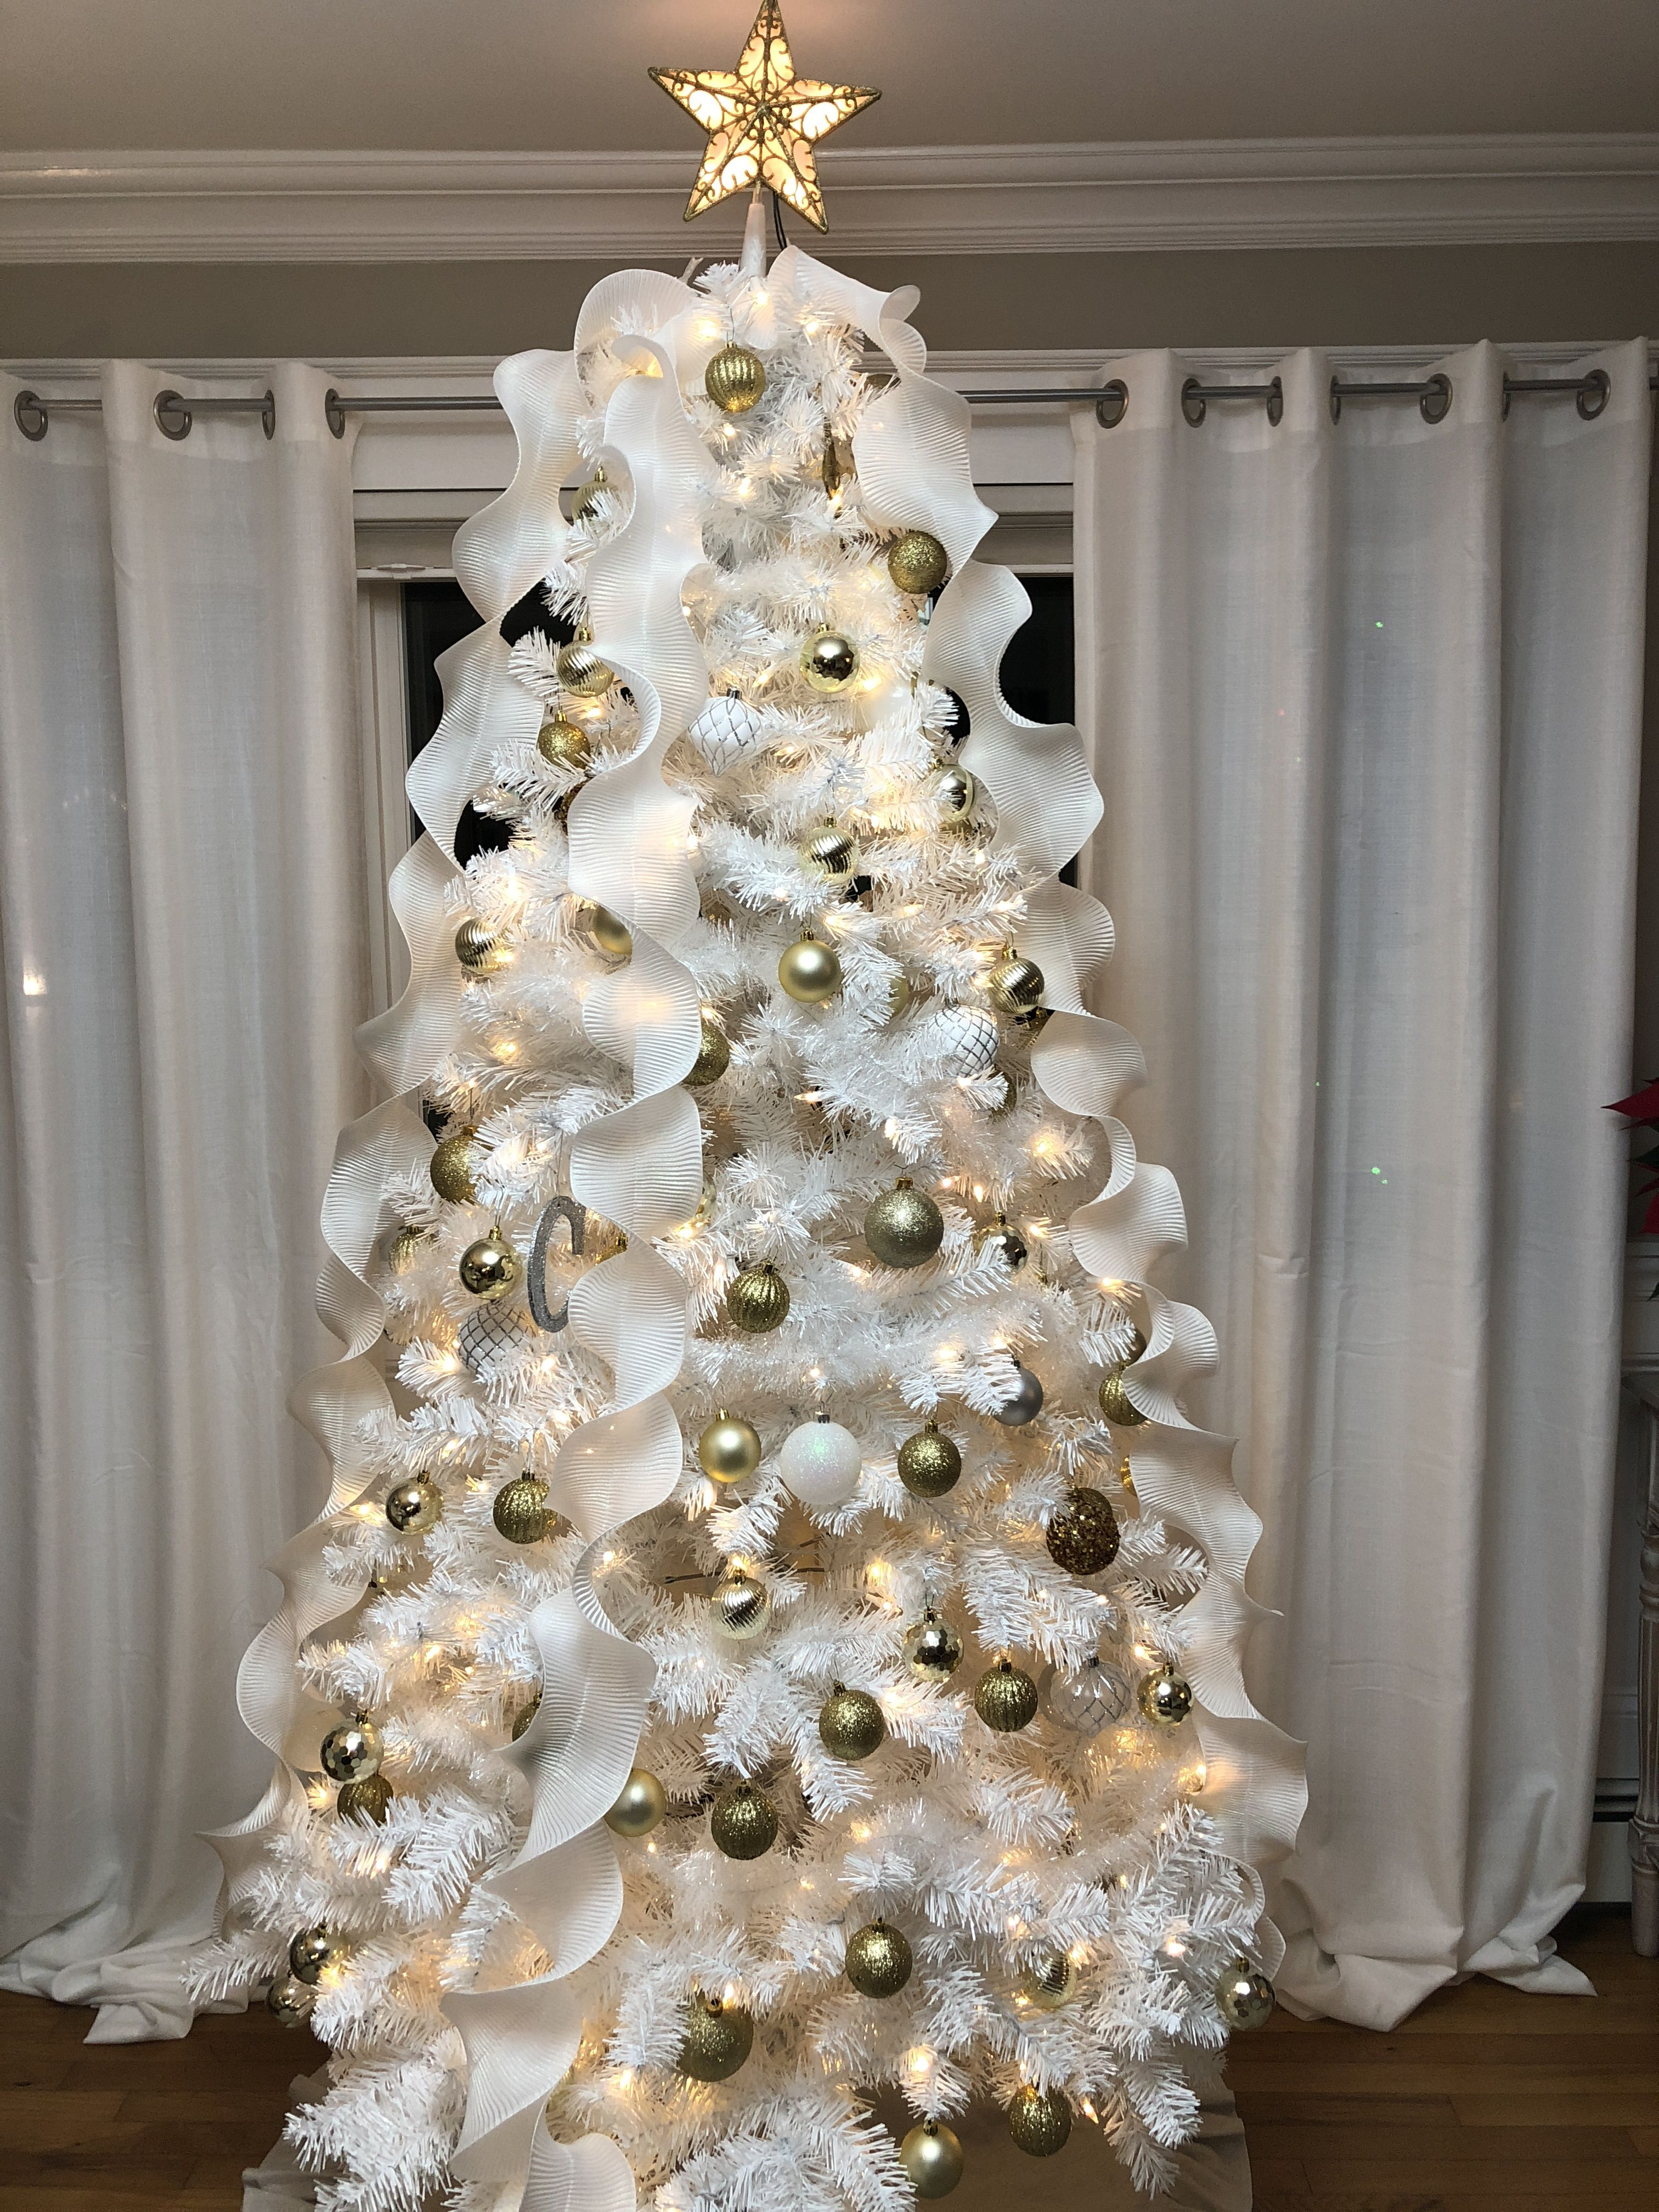 Spiral Ribbon White Christmas Tree With Gold White Ornaments